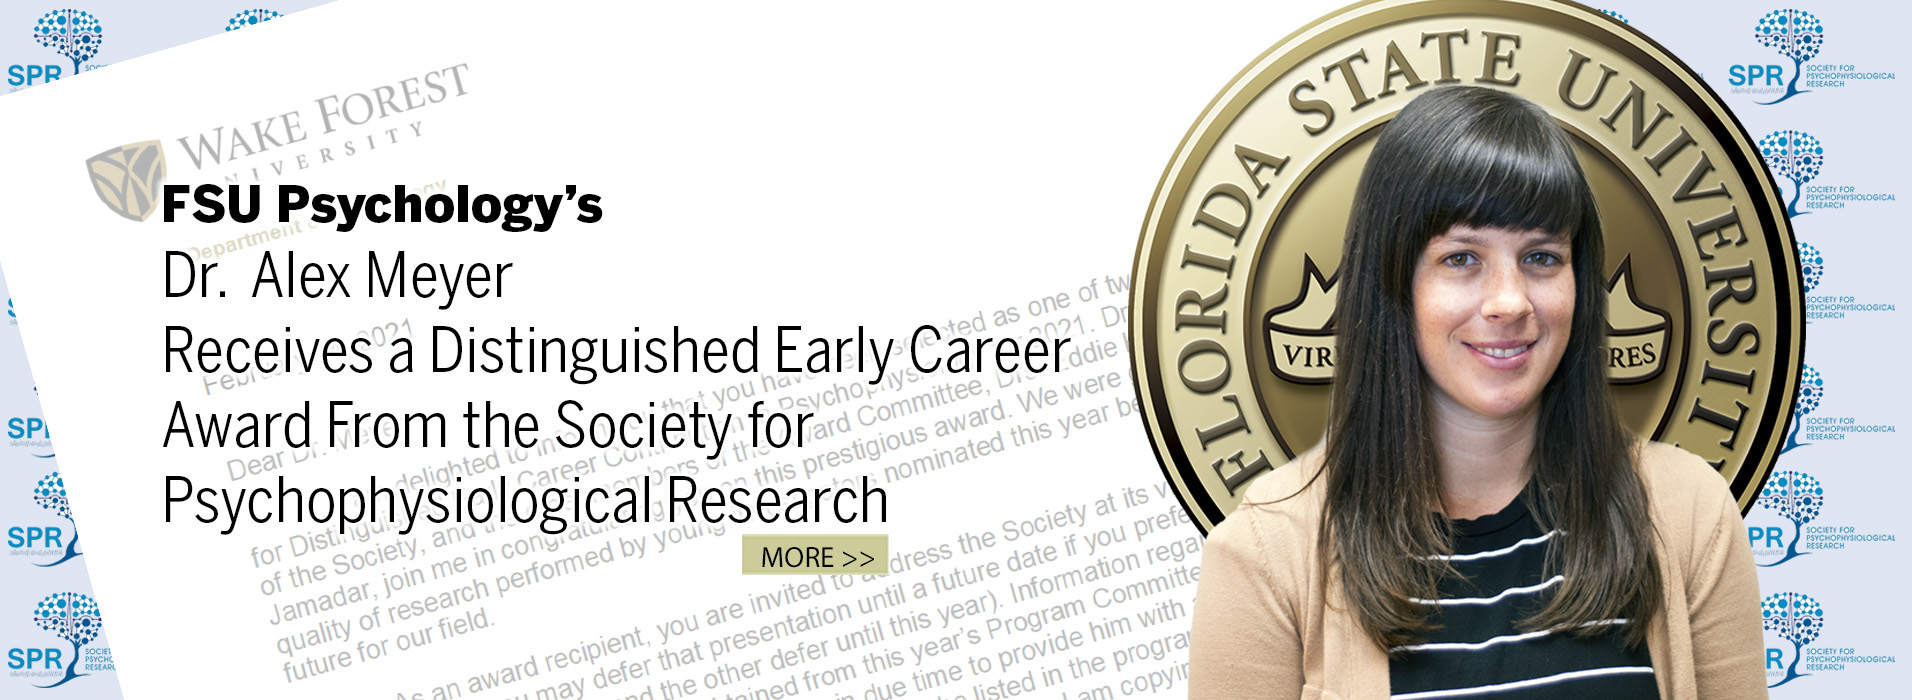 Dr.  Alex Meyer Receives a Distinguished Early Career Award From the Society for Psychophysiological Research